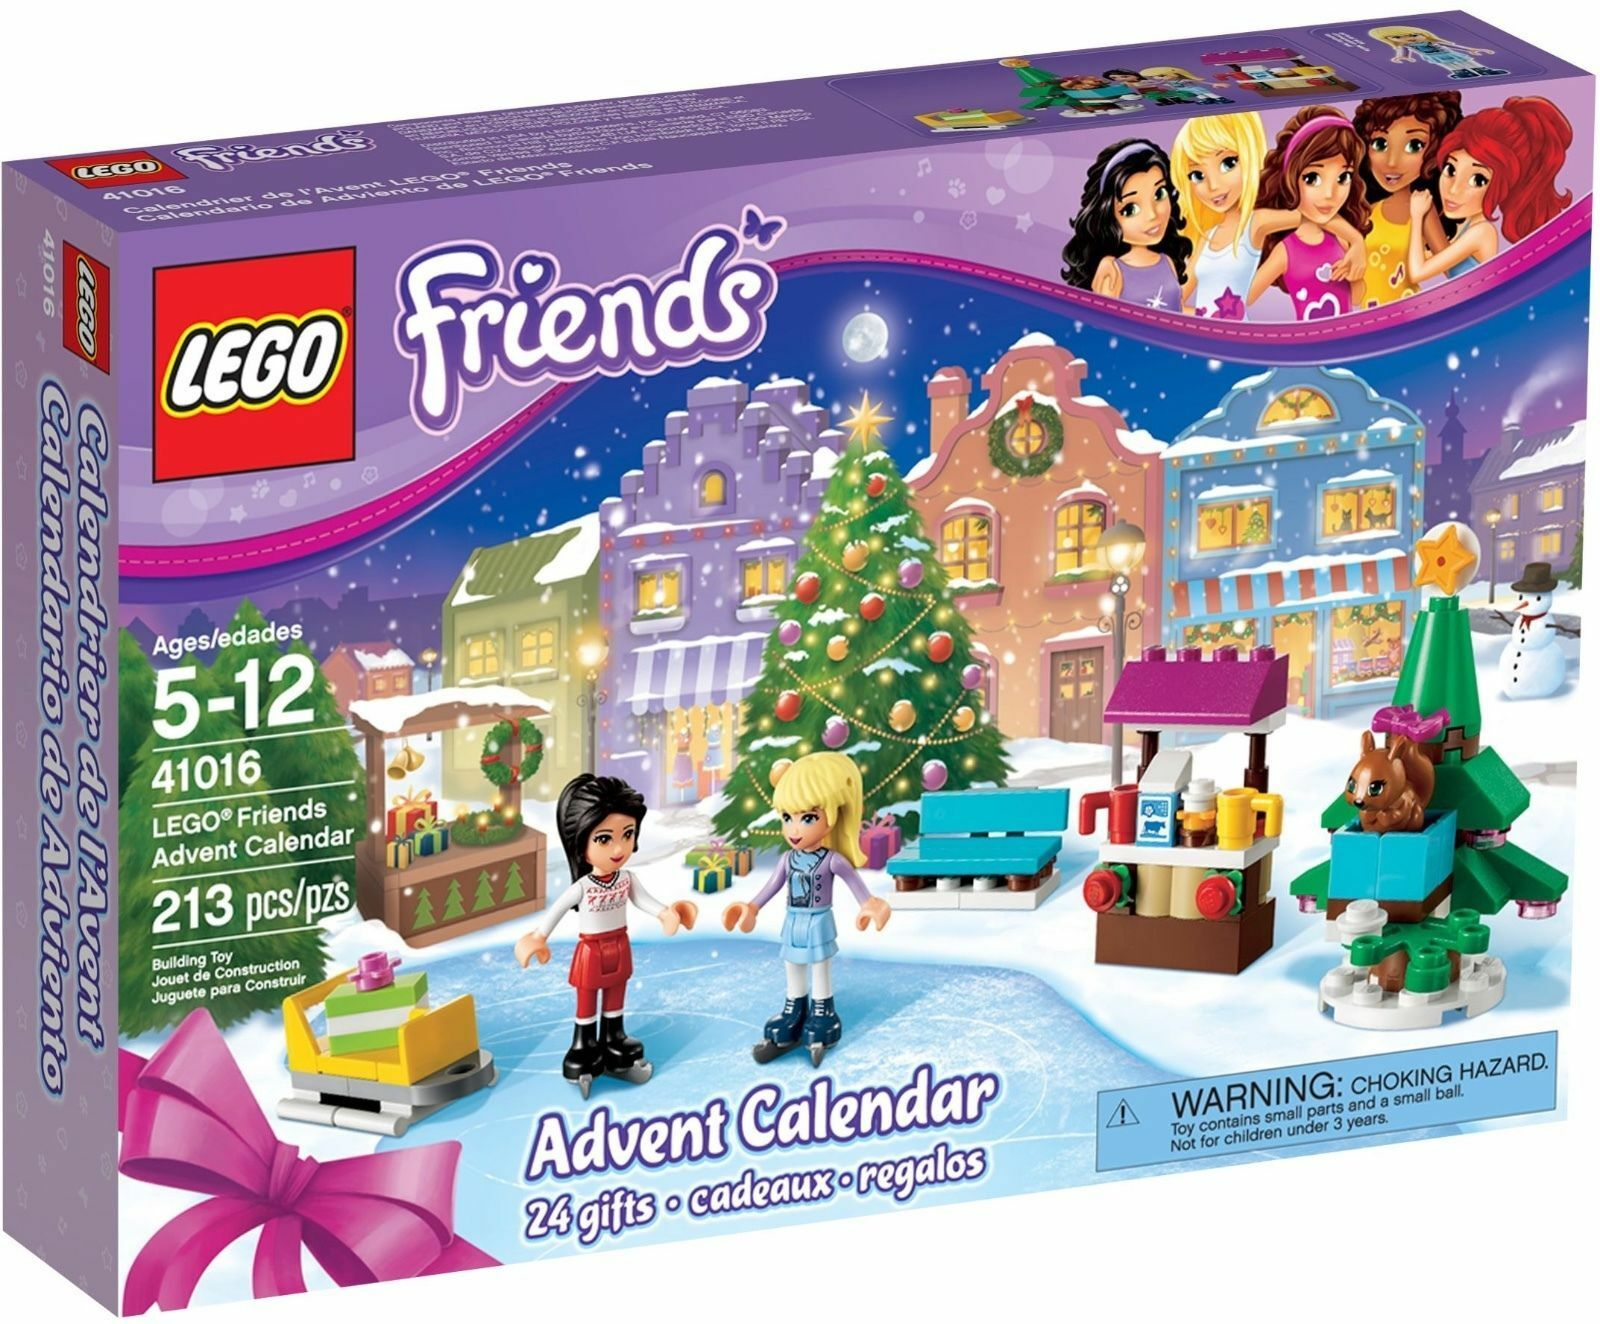 Lego  41016 Lego Friends 213 pieces 5-12 years Advent Calendar NIB 2013 RETIrosso